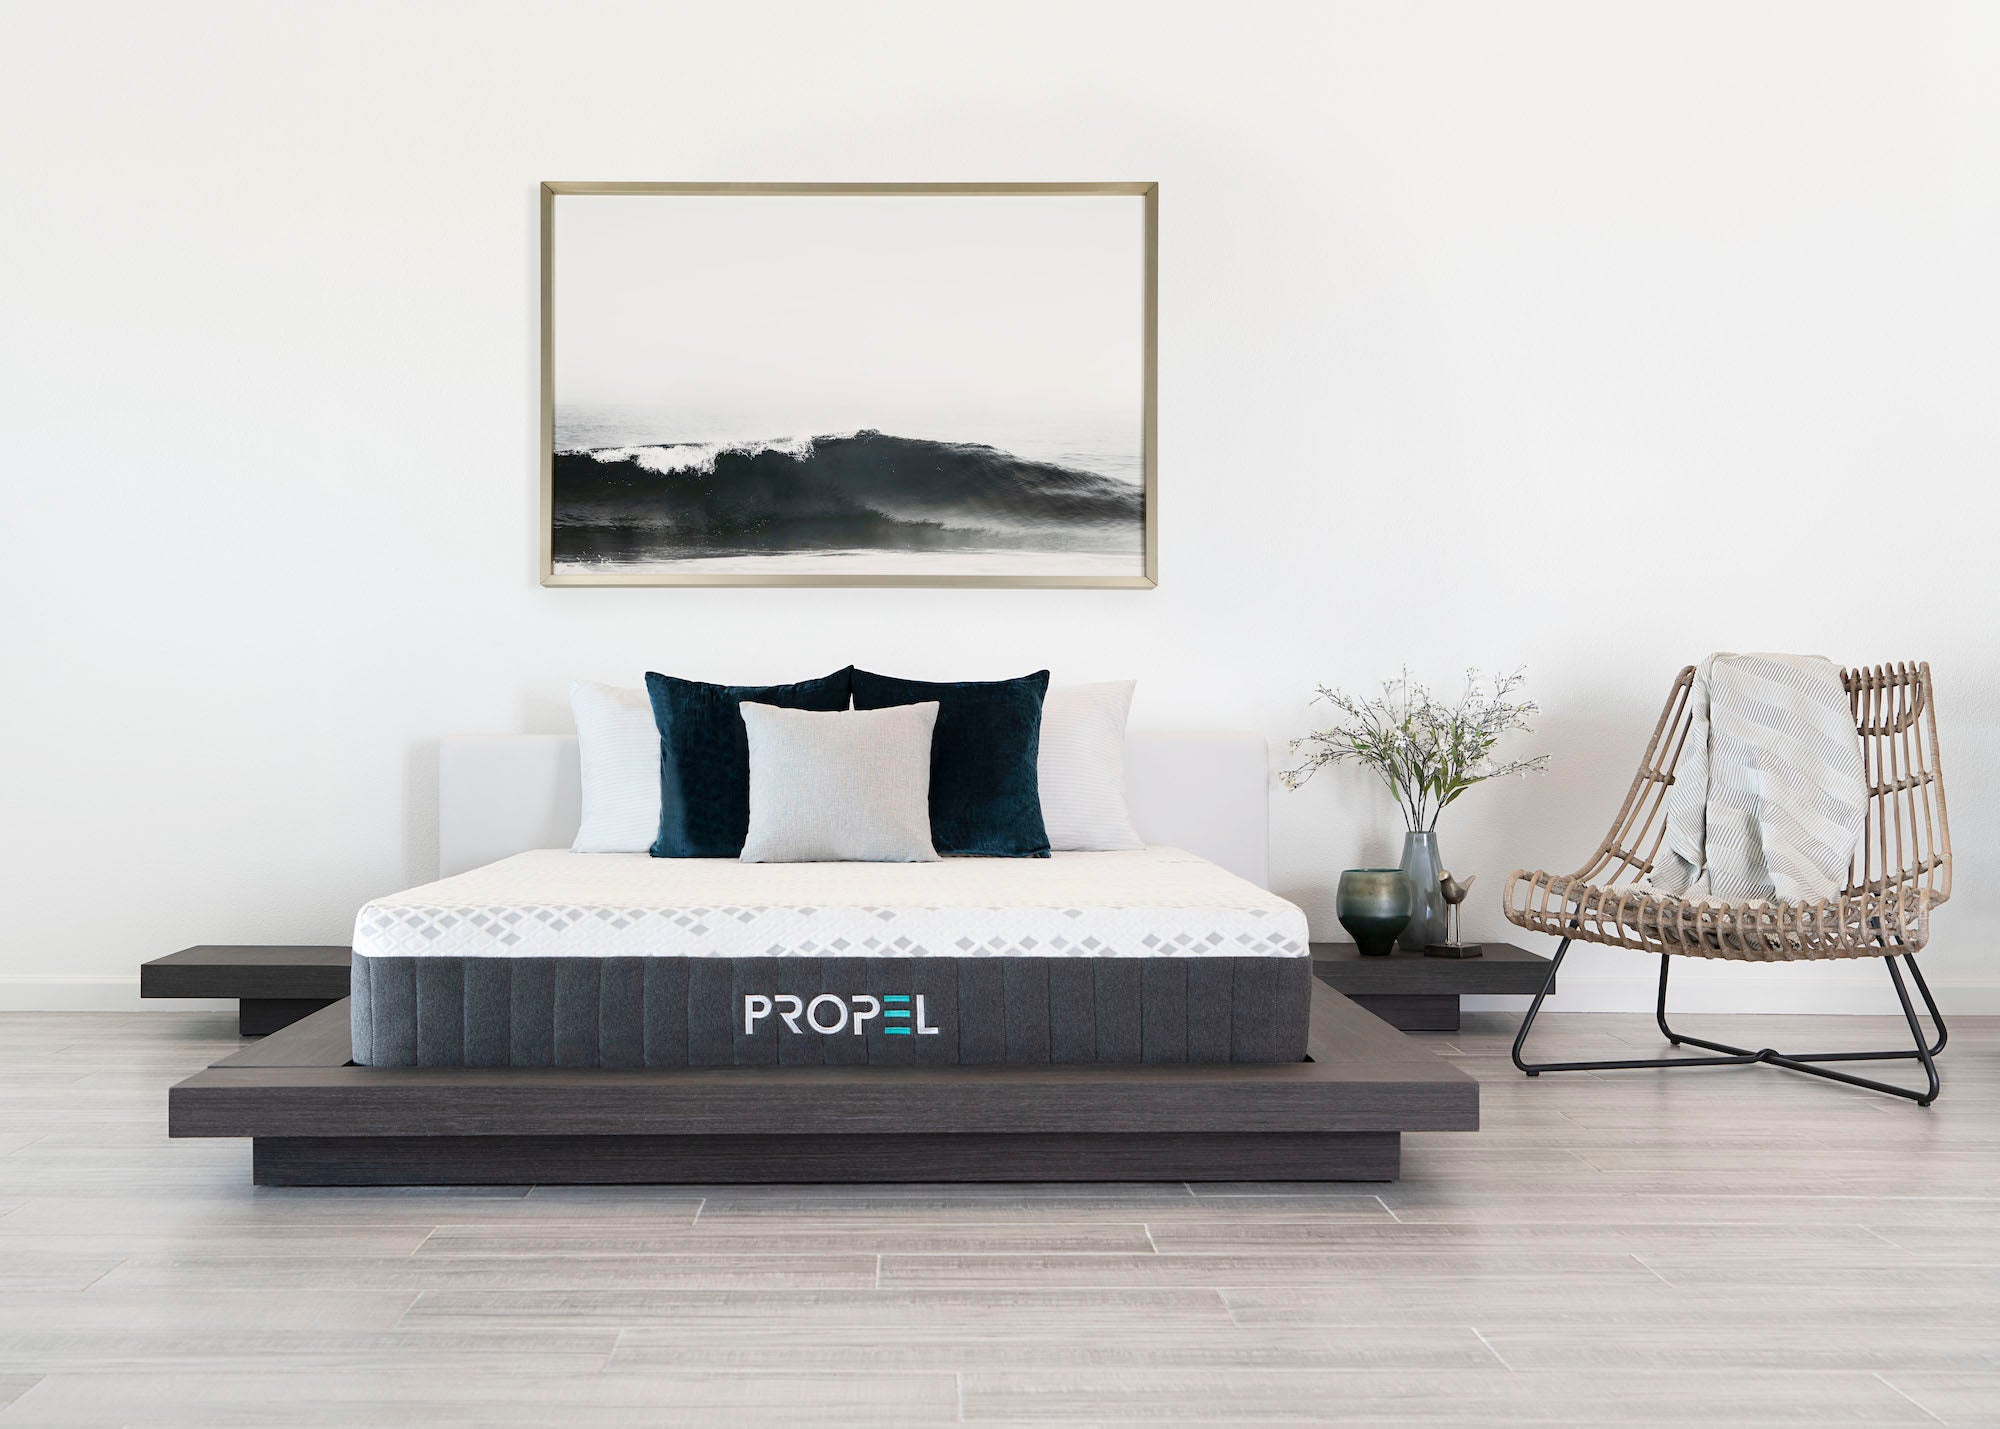 Brooklyn Bedding Launches Propel With Upcycle A Smarter Sleep To Fue Brooklyn Bedding